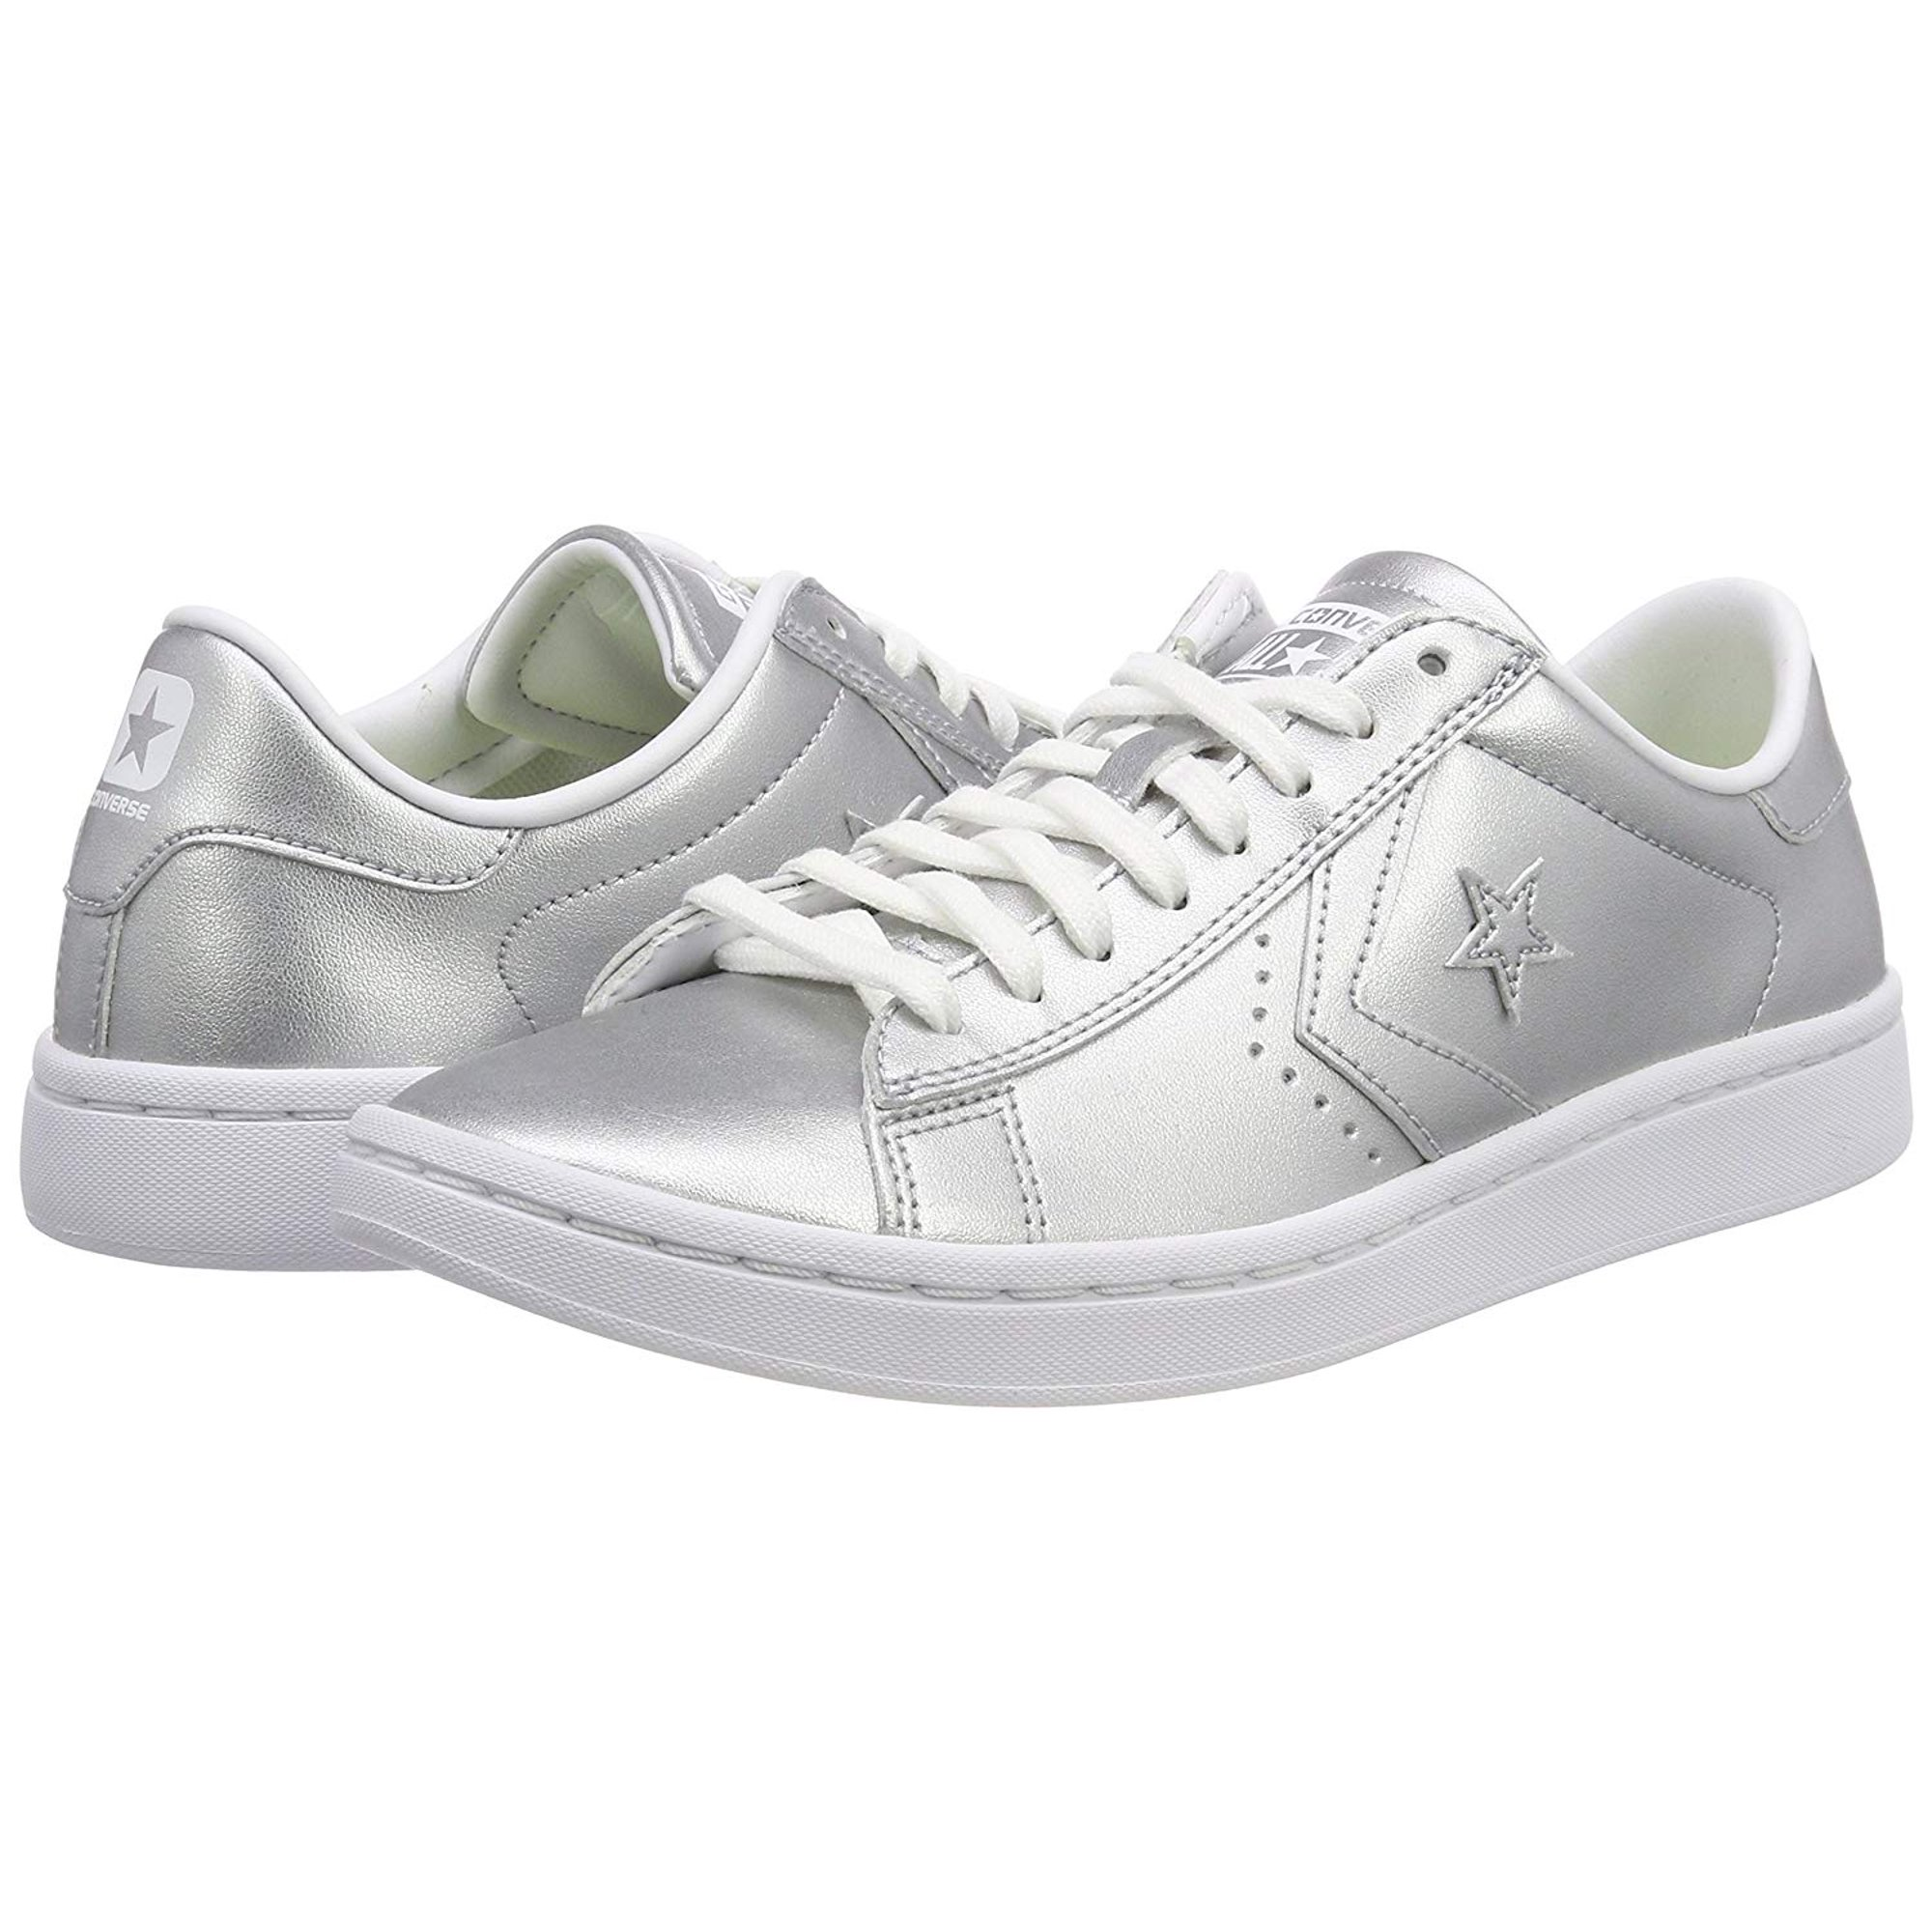 b45816aa6db5 Converse Womens Pl Lp Ox Low Top Lace Up Fashion